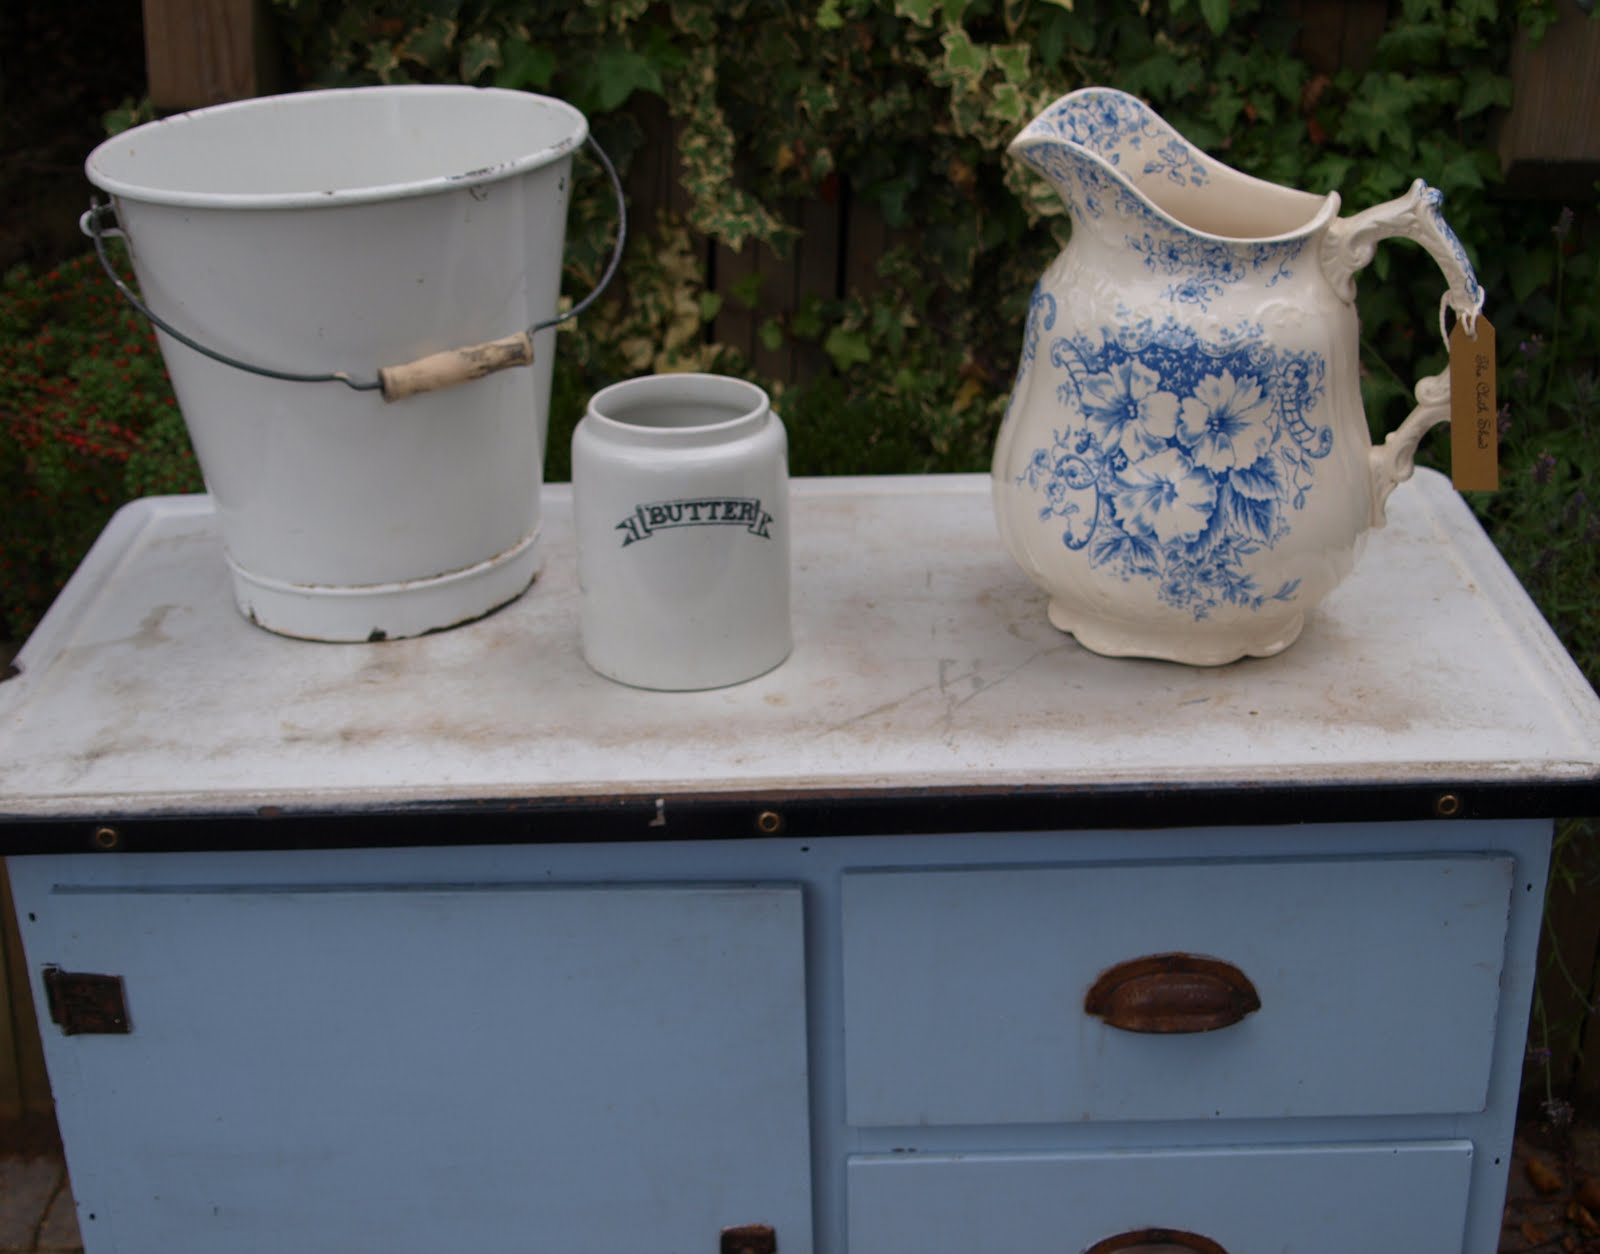 This small kitchen dresser base with battered enamel top would be a